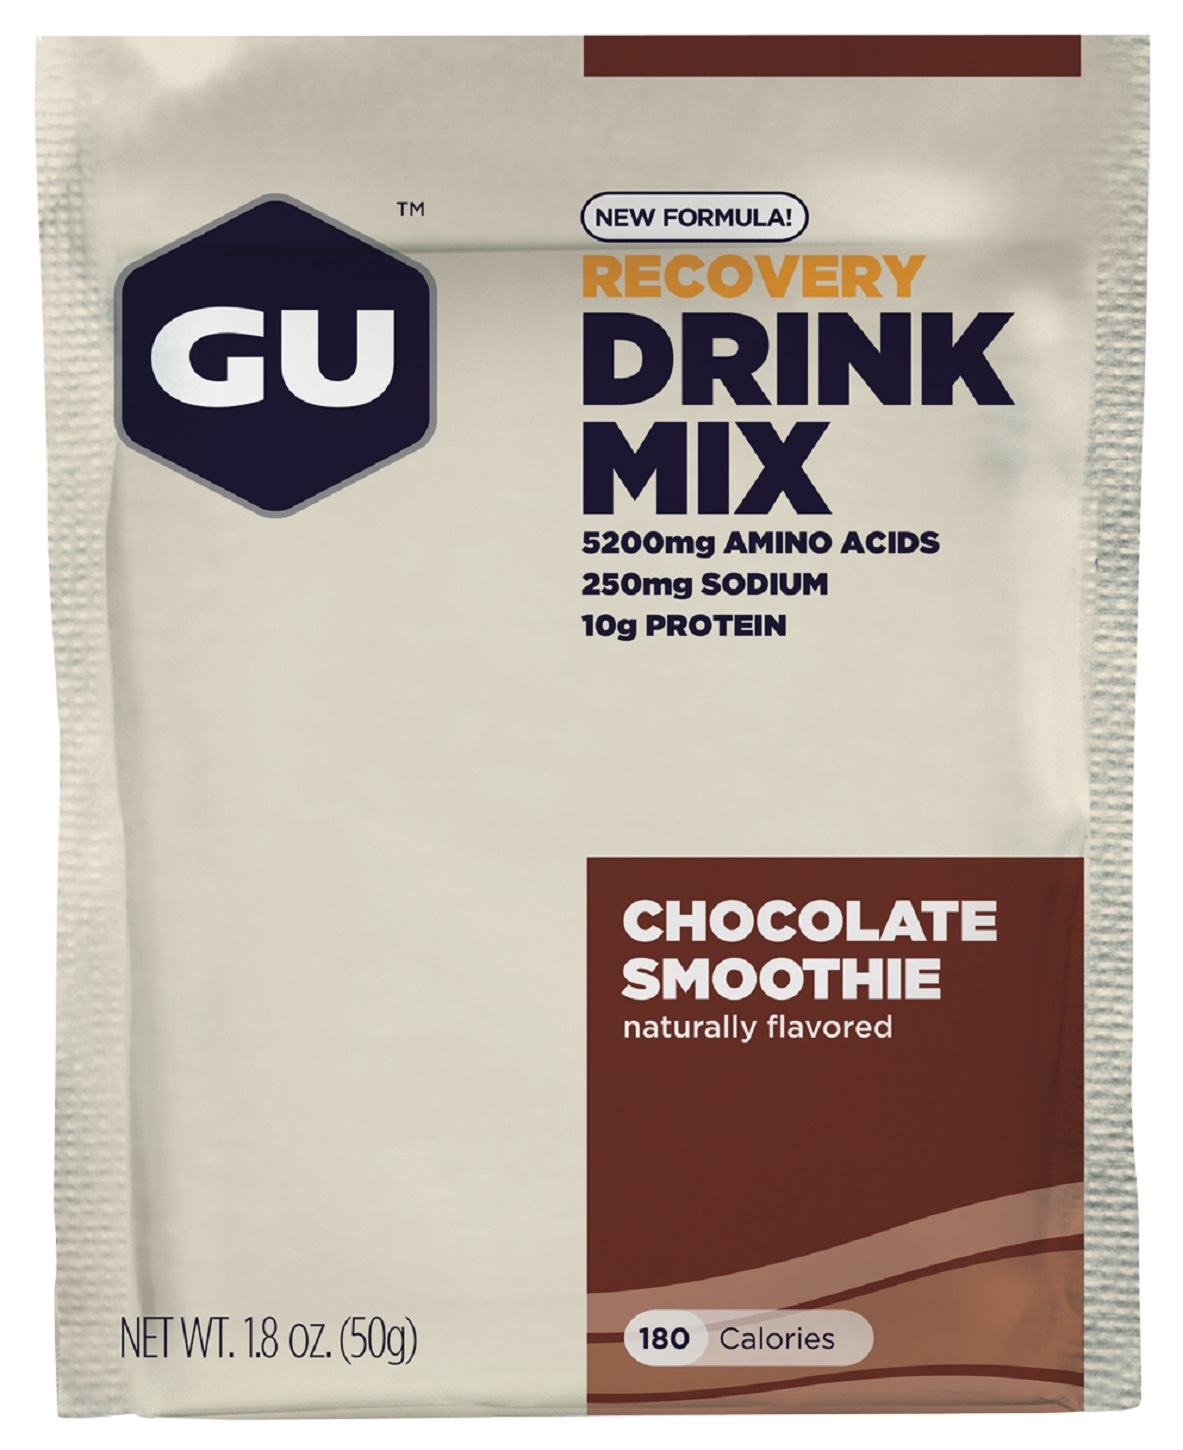 Gu Recovery Drink Mix Review